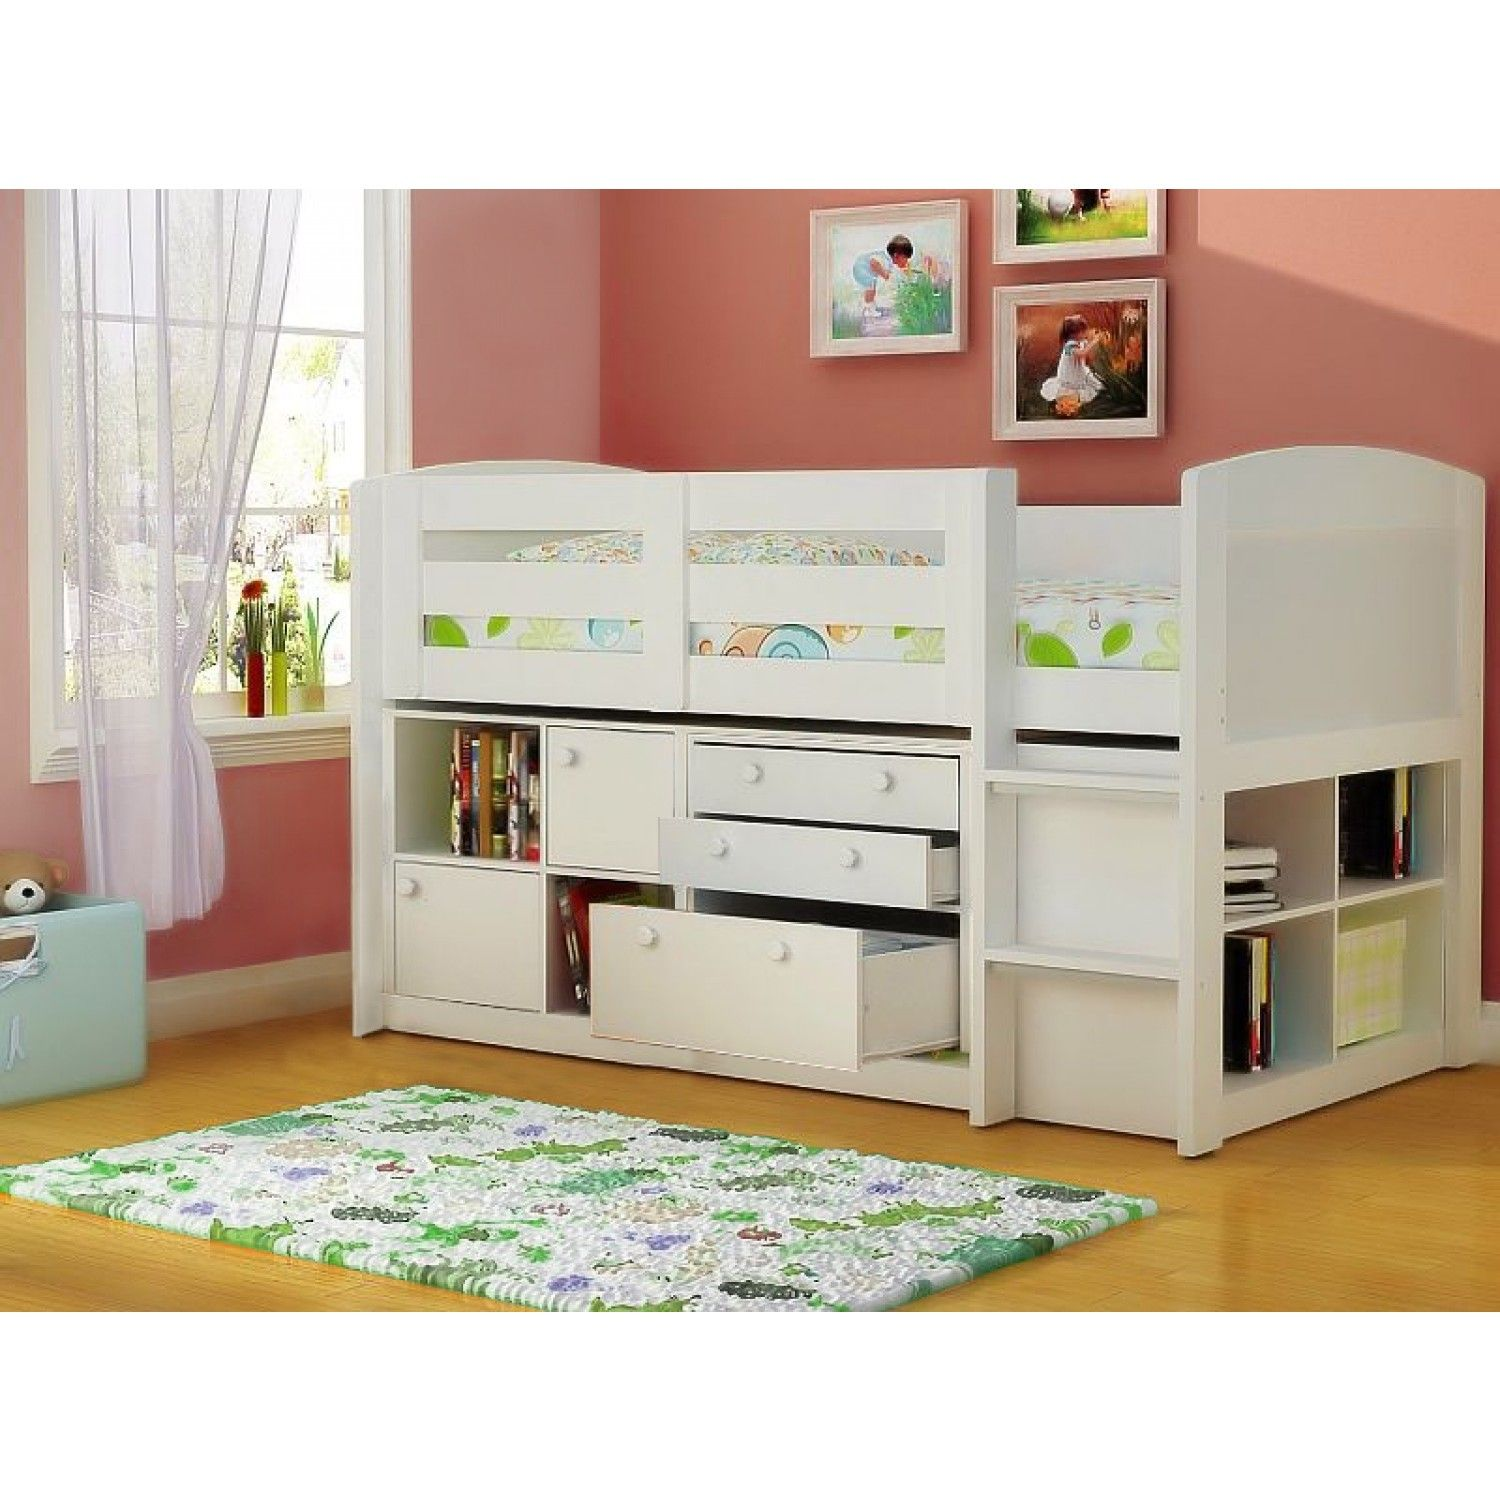 Loft Beds For Kids With Storage  Are You Planning